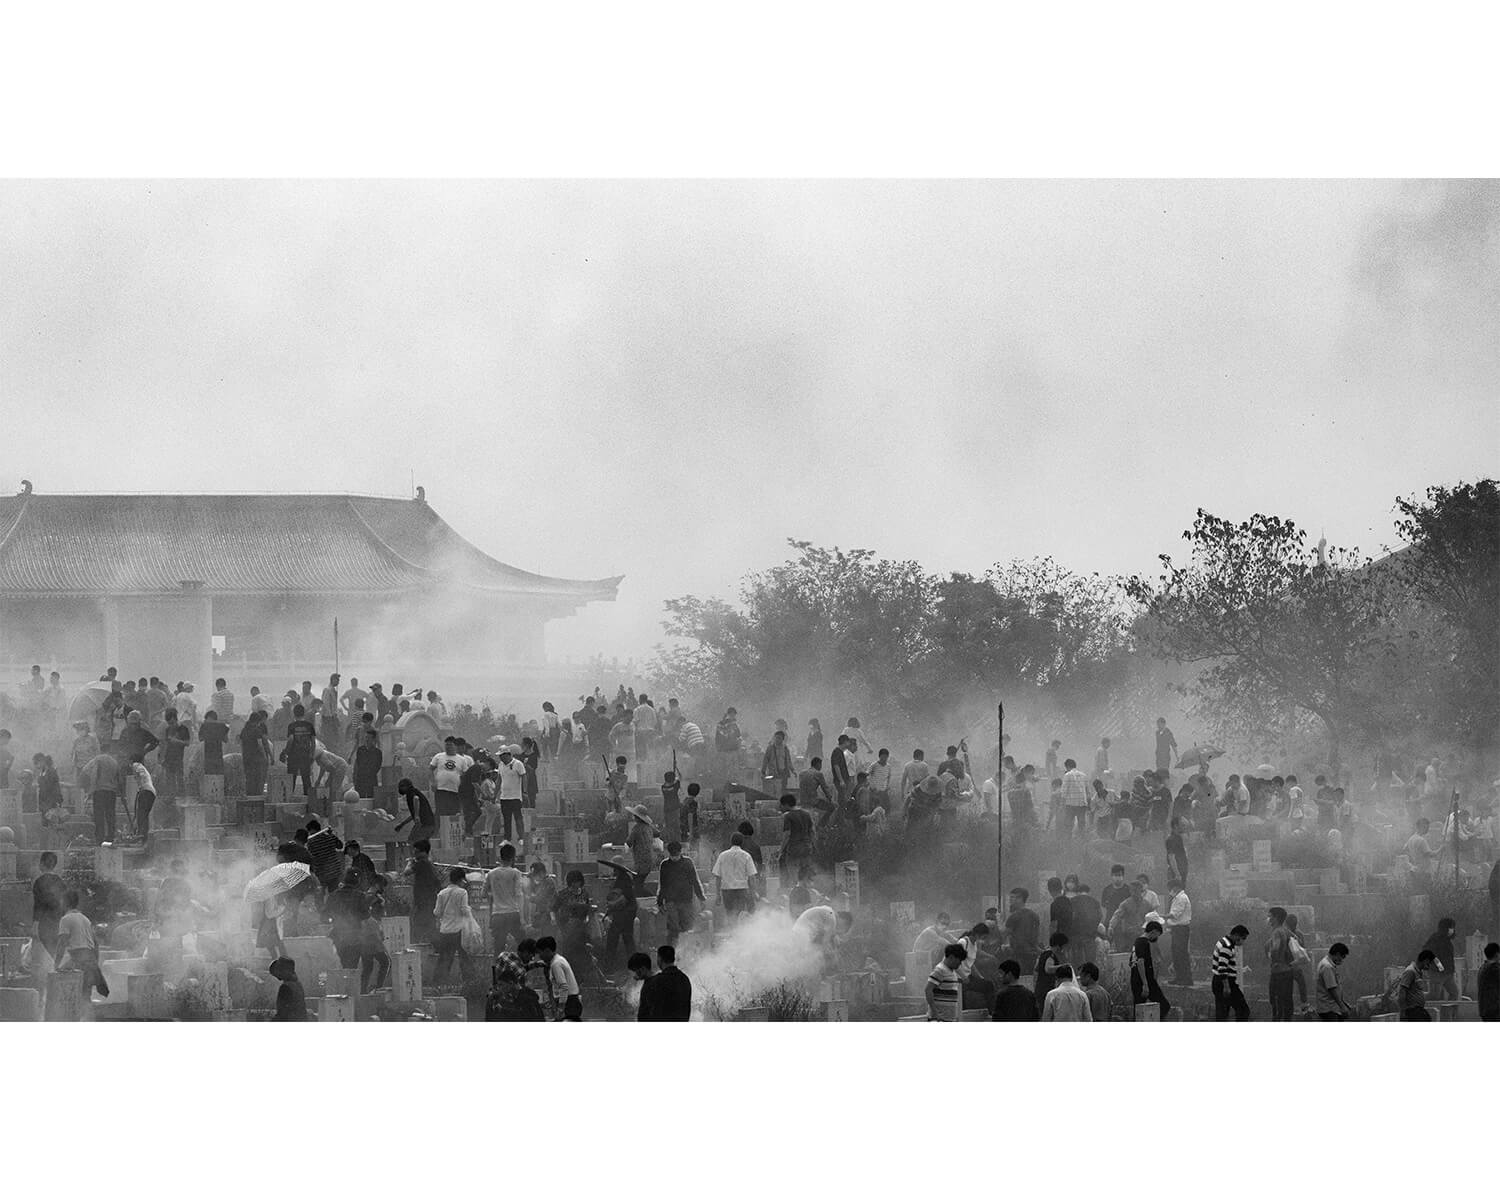 Tony Mak - To The West Of The Solitary Sea. Crowds of people in front of building and smoke